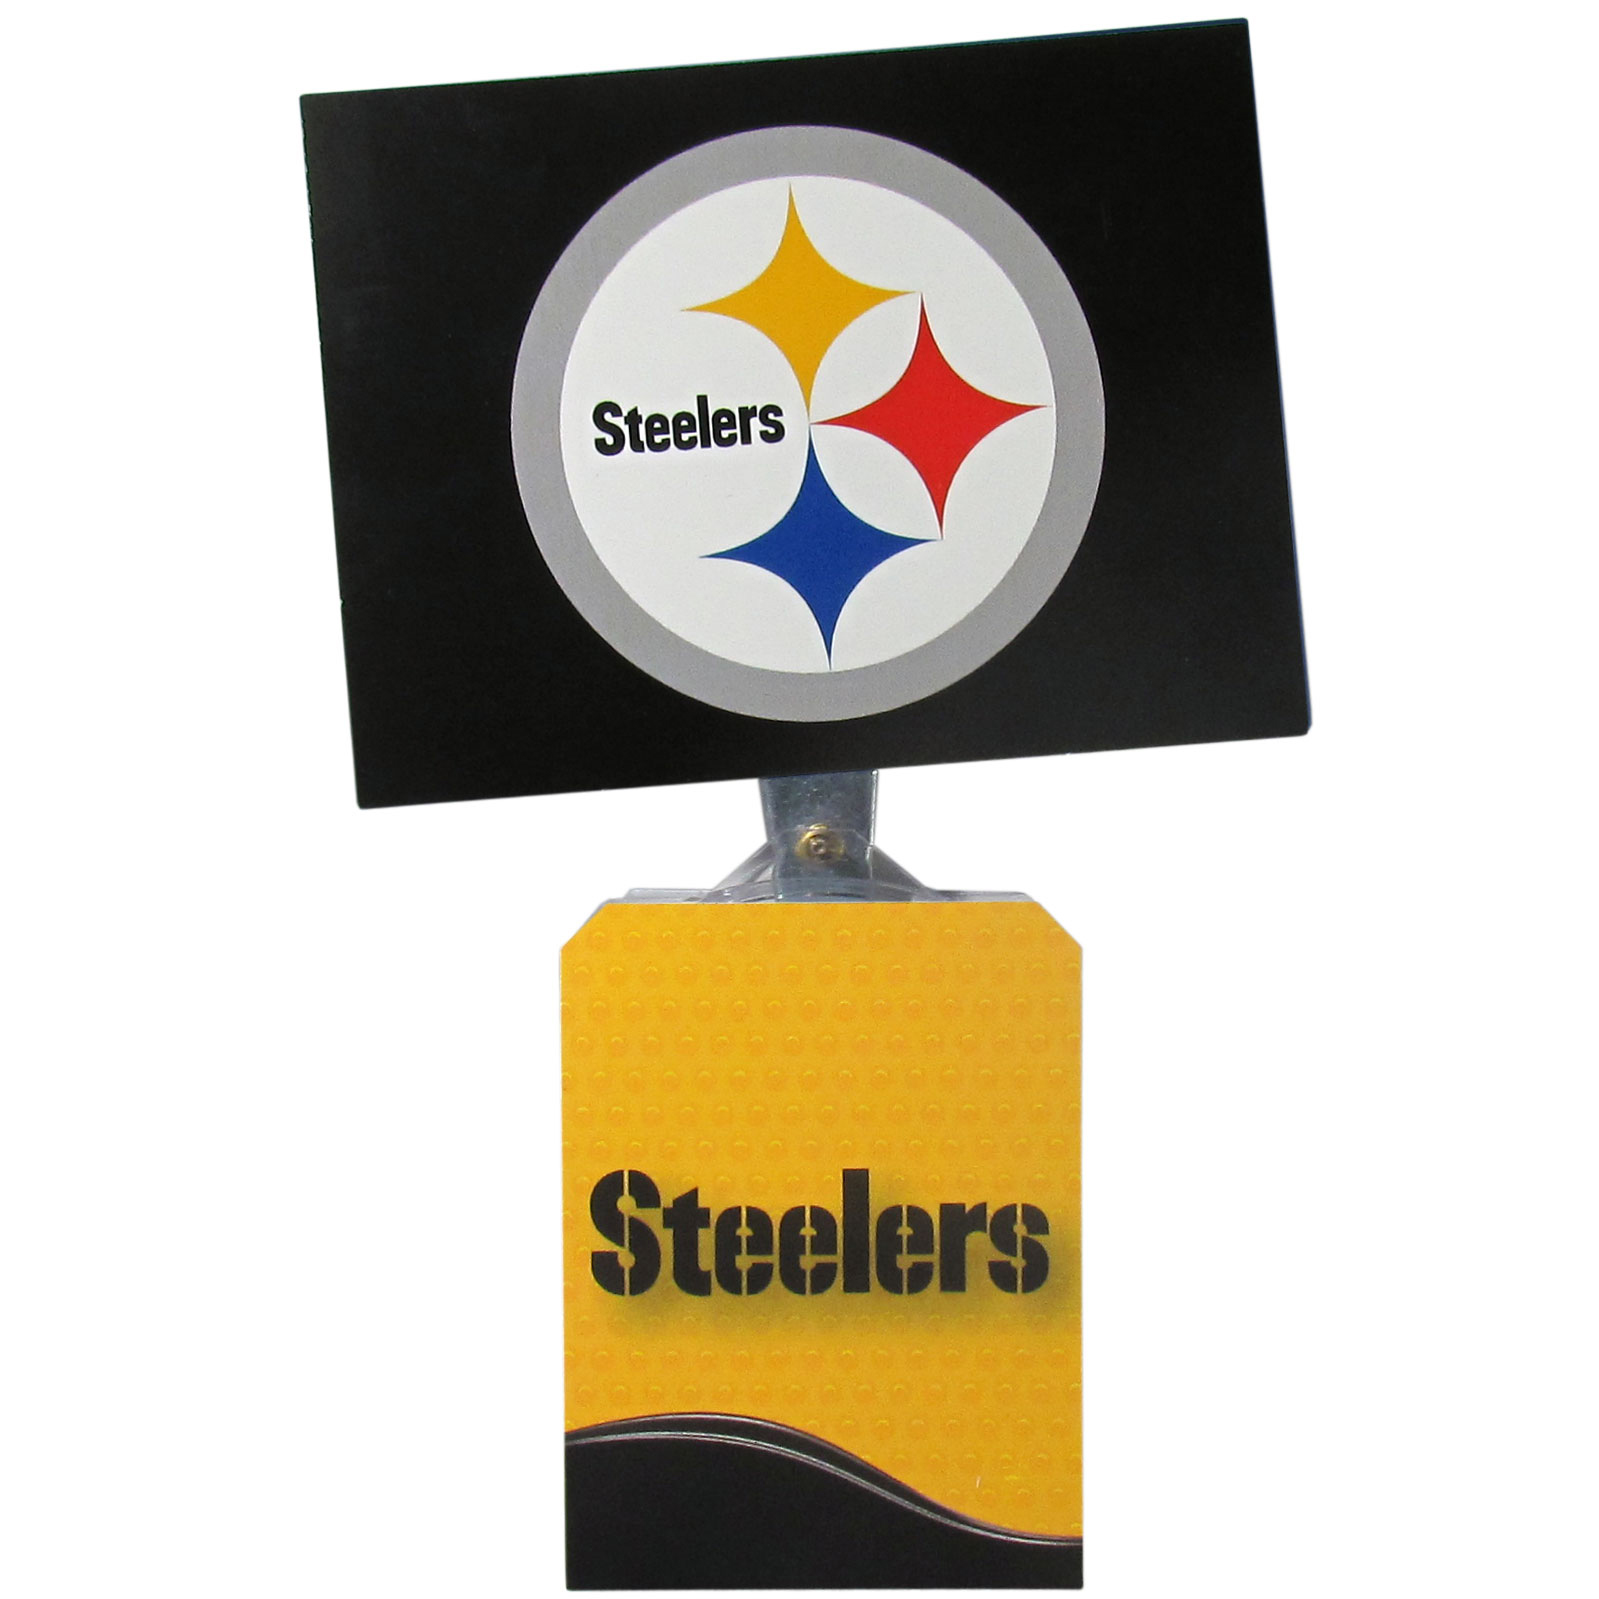 Pittsburgh Steelers Solar Flags - Get pumped up on the way to game with Siskiyou's Chicago Bears Pittsburgh Steelers Solar Flag that mounts to your dashboard or window. The in-motion solar flag also doubles as decoration for your tailgate or homegate! The base of the flag is 3 inches tall and the flag is 4 inches making the entire in-motion solar flag stand at 7 inches tall. Keep your spirit moving with your favorite team's Solar Flag.